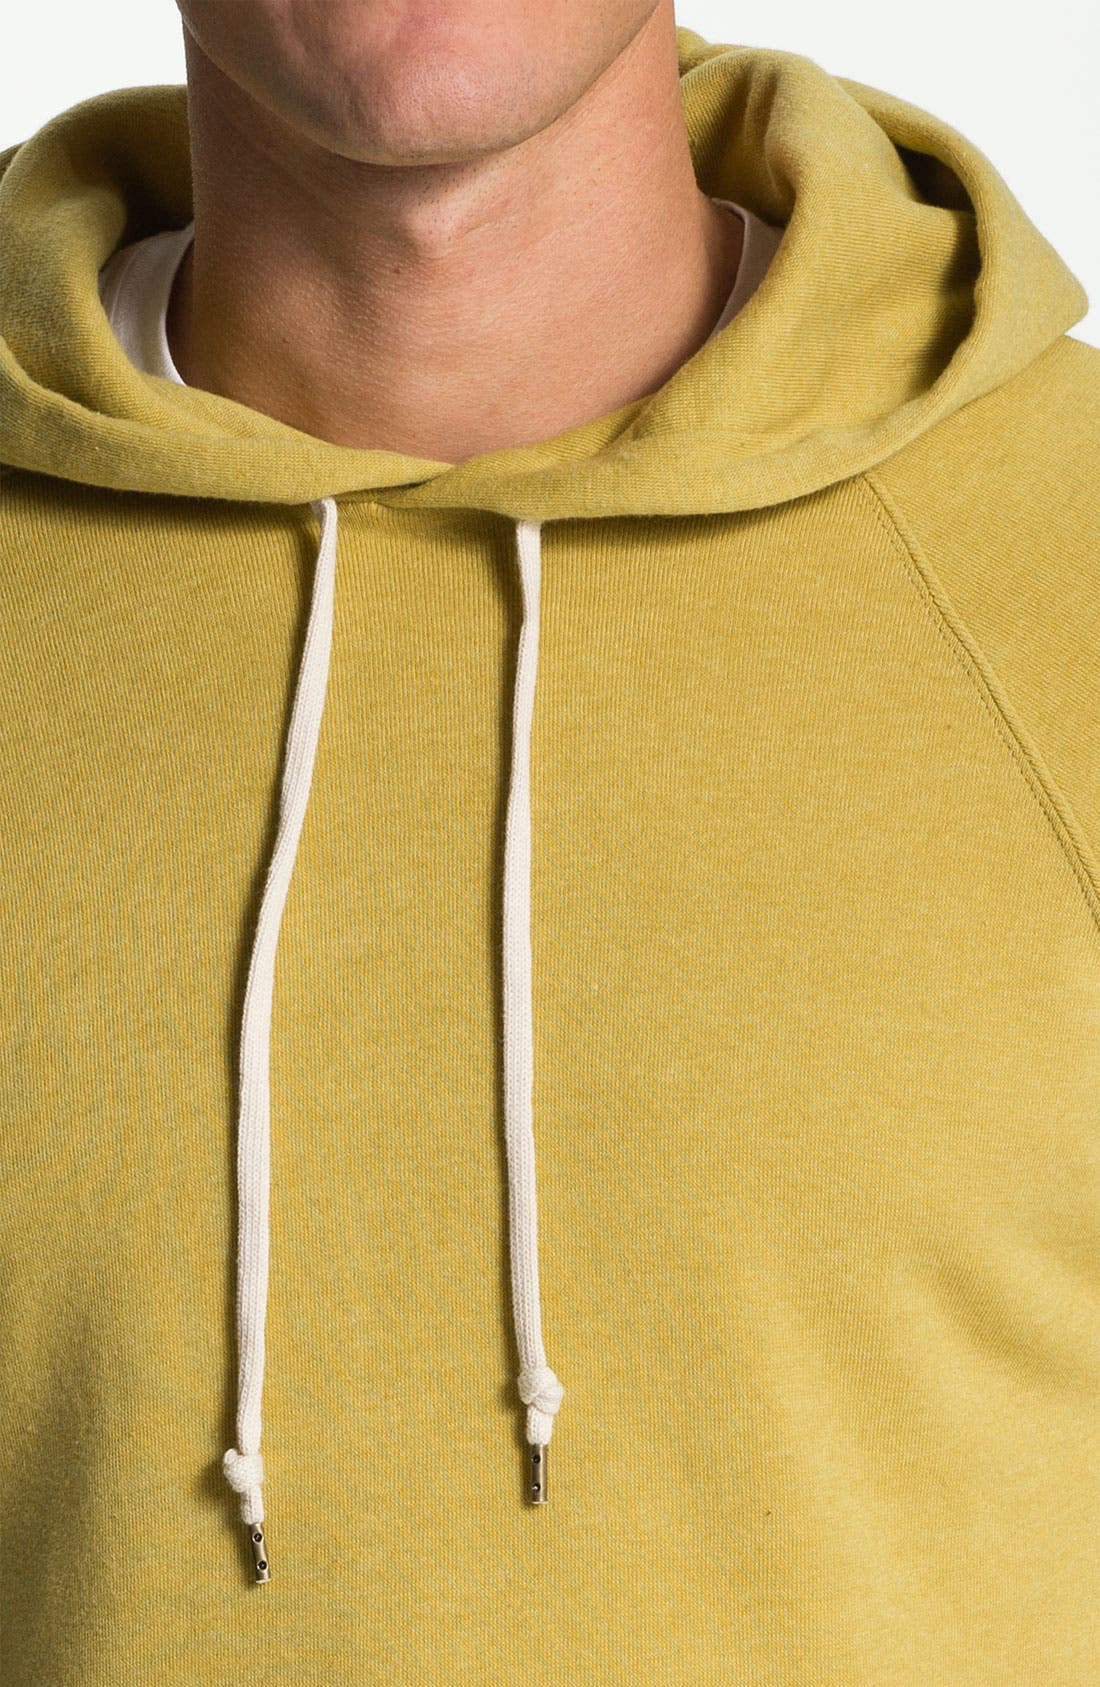 Alternate Image 3  - Obey 'Lofty Creature Comforts' Hooded Sweatshirt